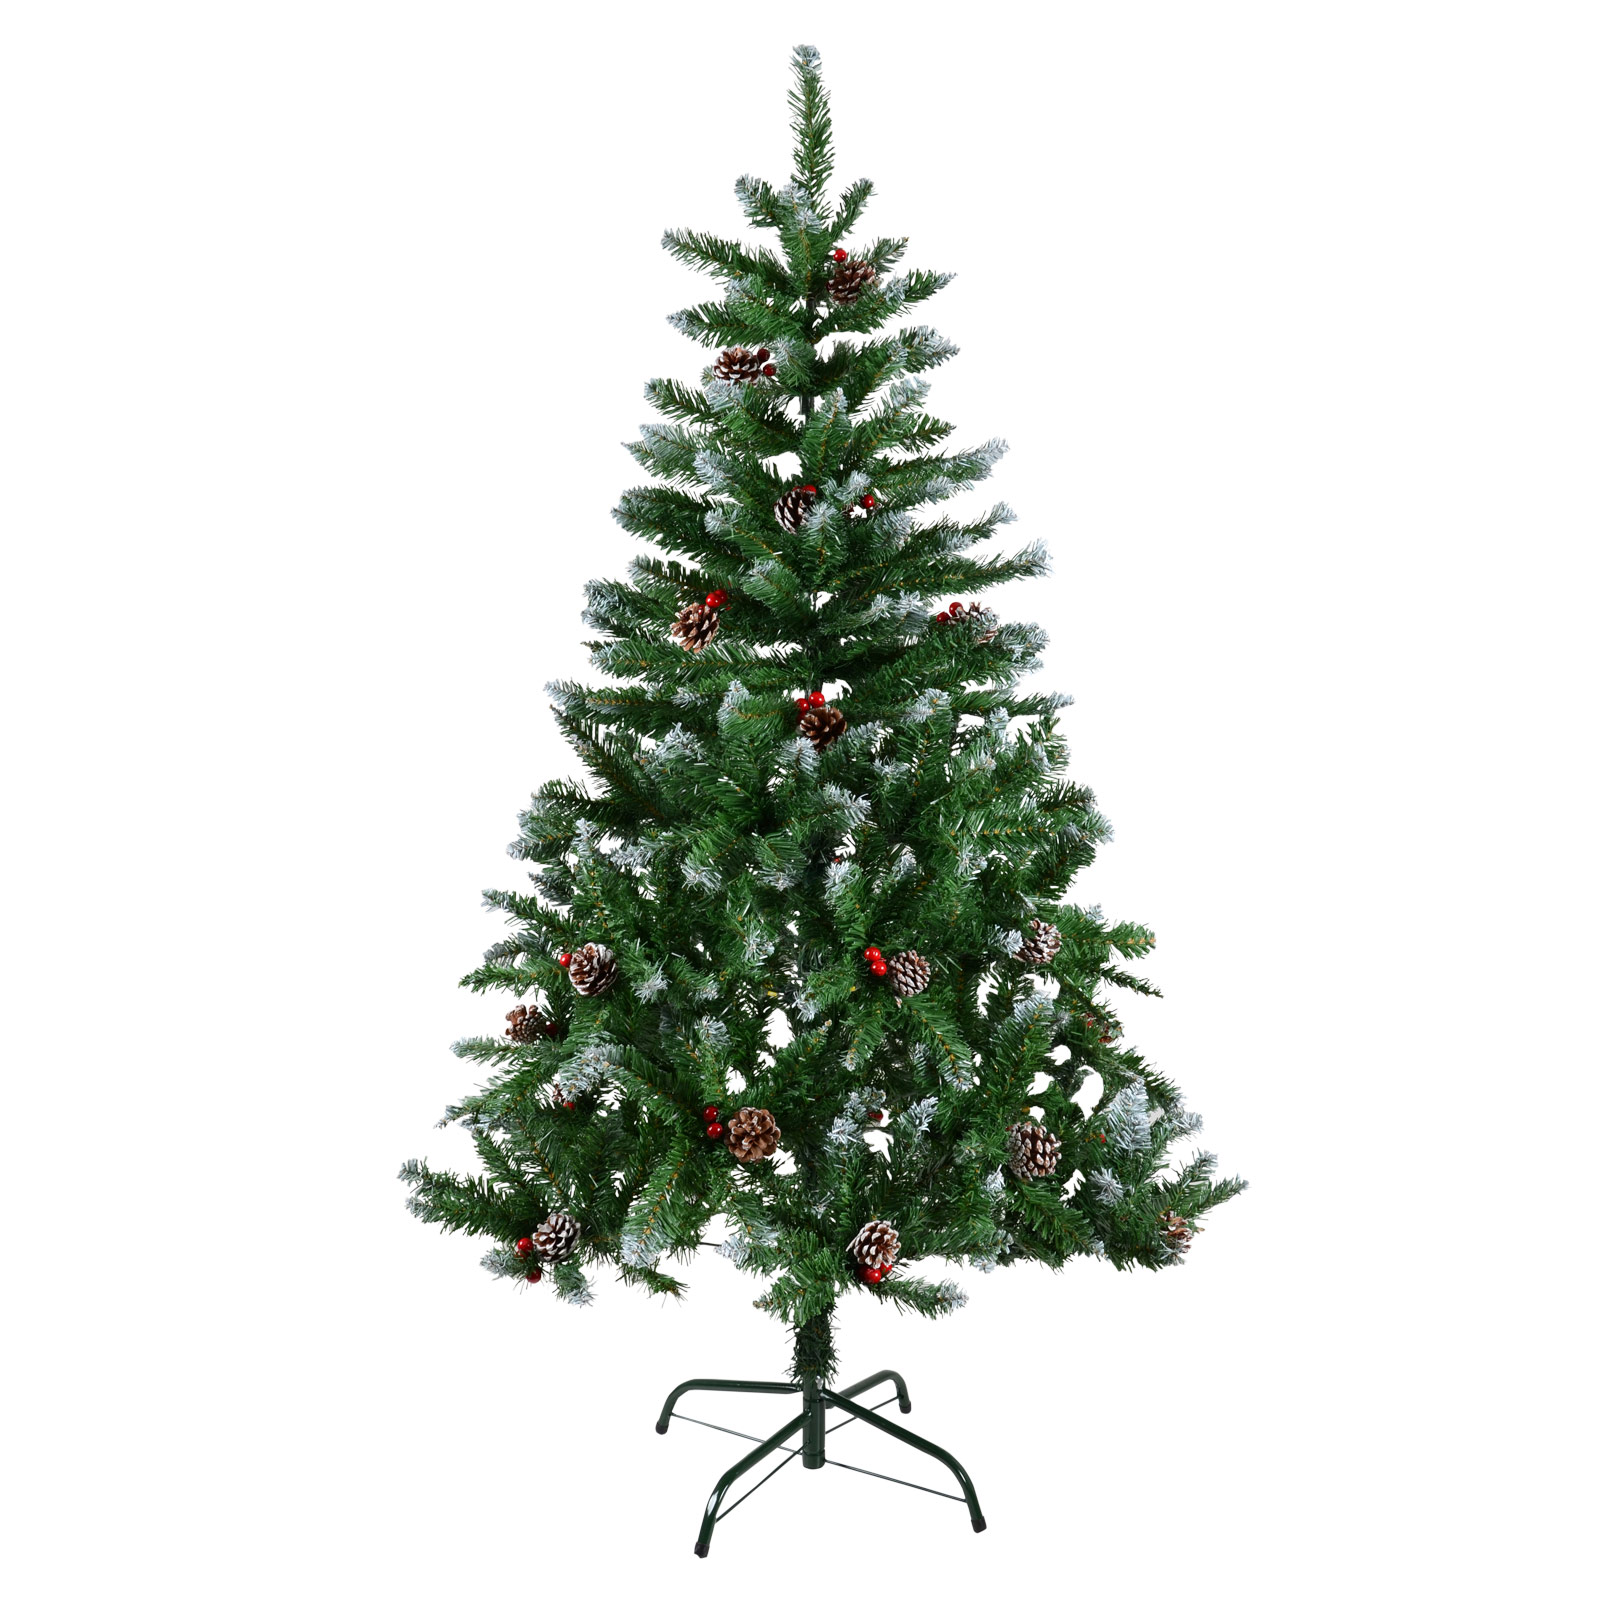 4ft 5ft 6ft 7ft Green Artificial Christmas Xmas Tree Snow Berries ...